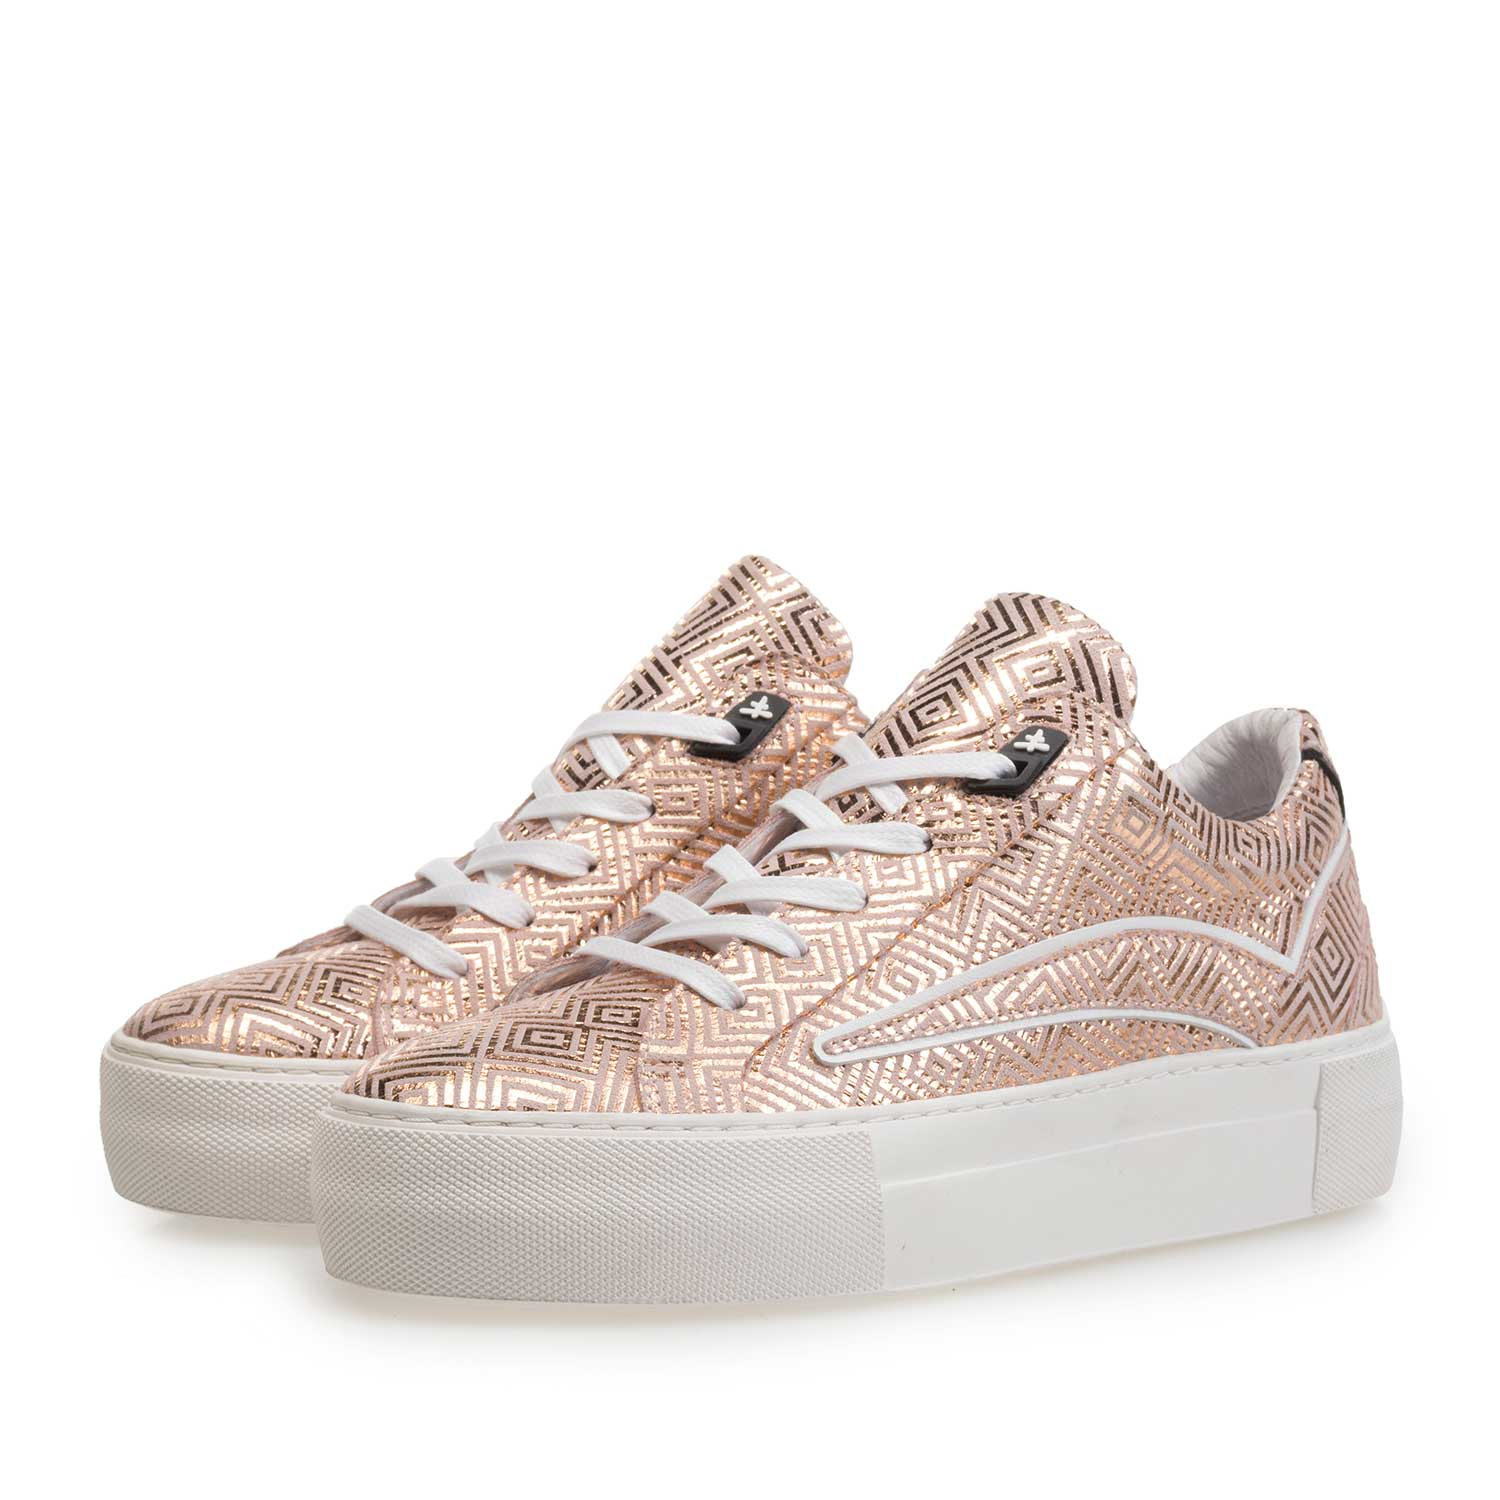 85259/01 - Rose leather sneaker with metallic print